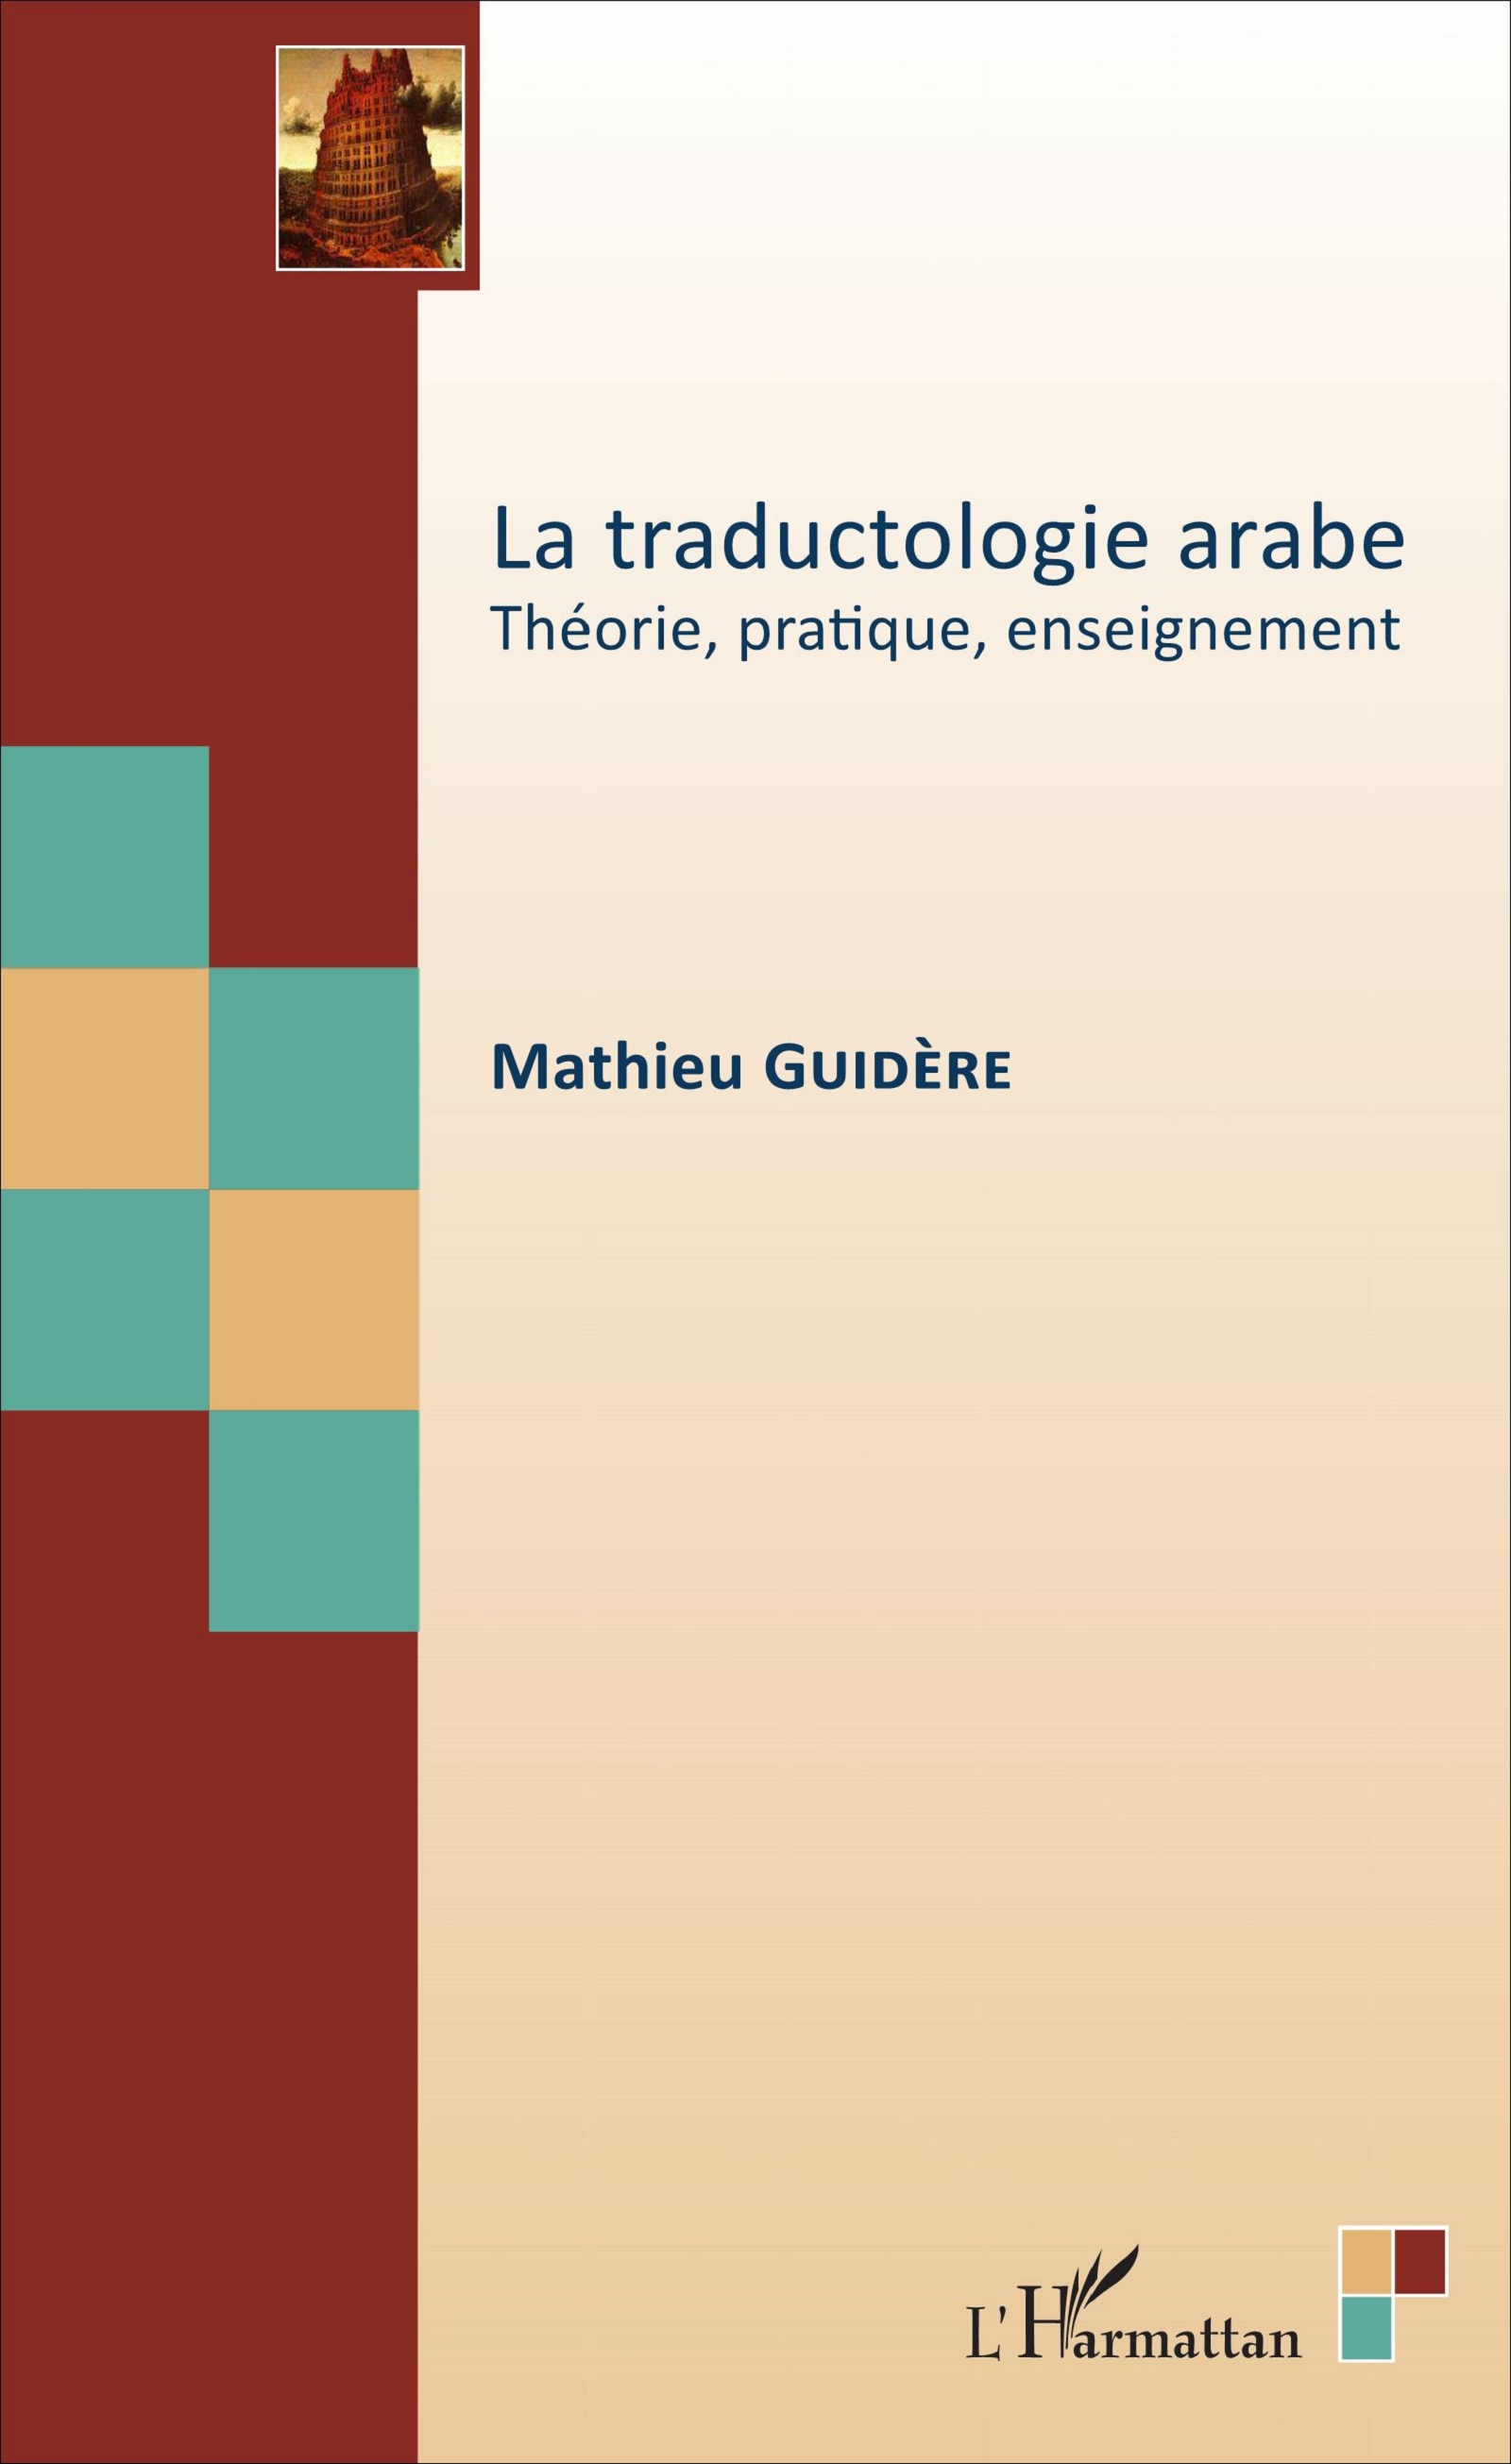 La traductologie arabe